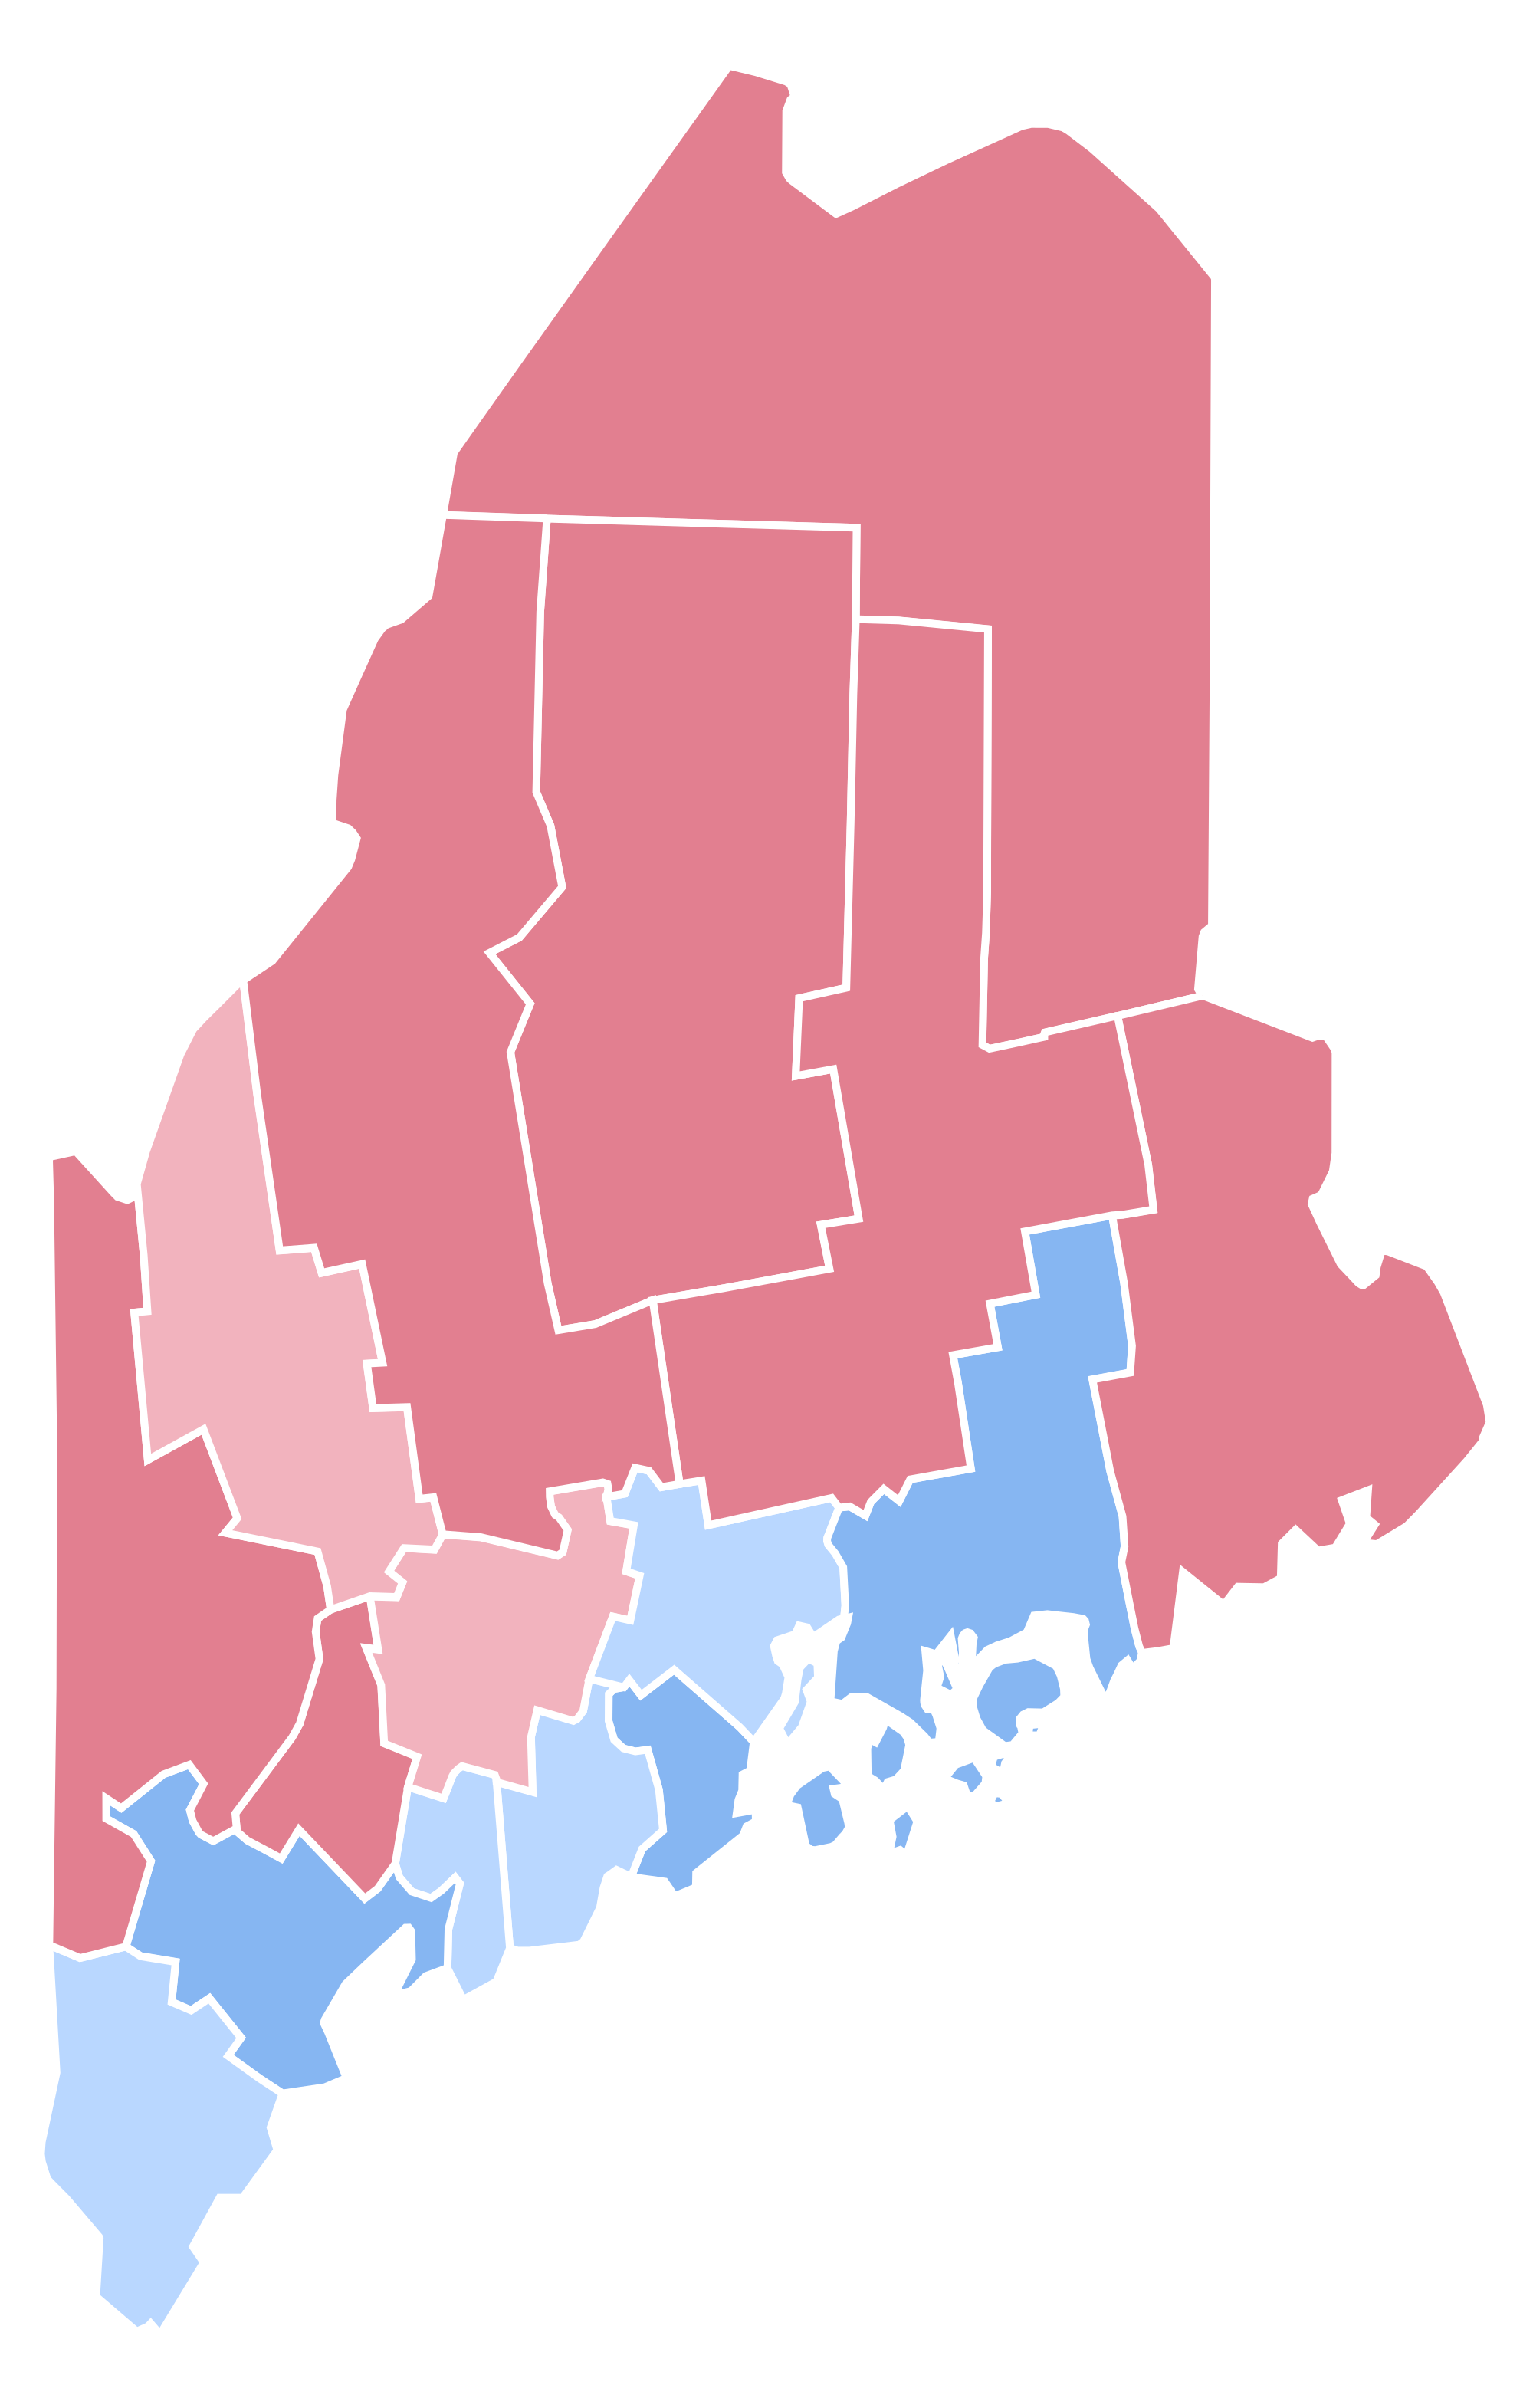 Maine vector svg. File presidential election results